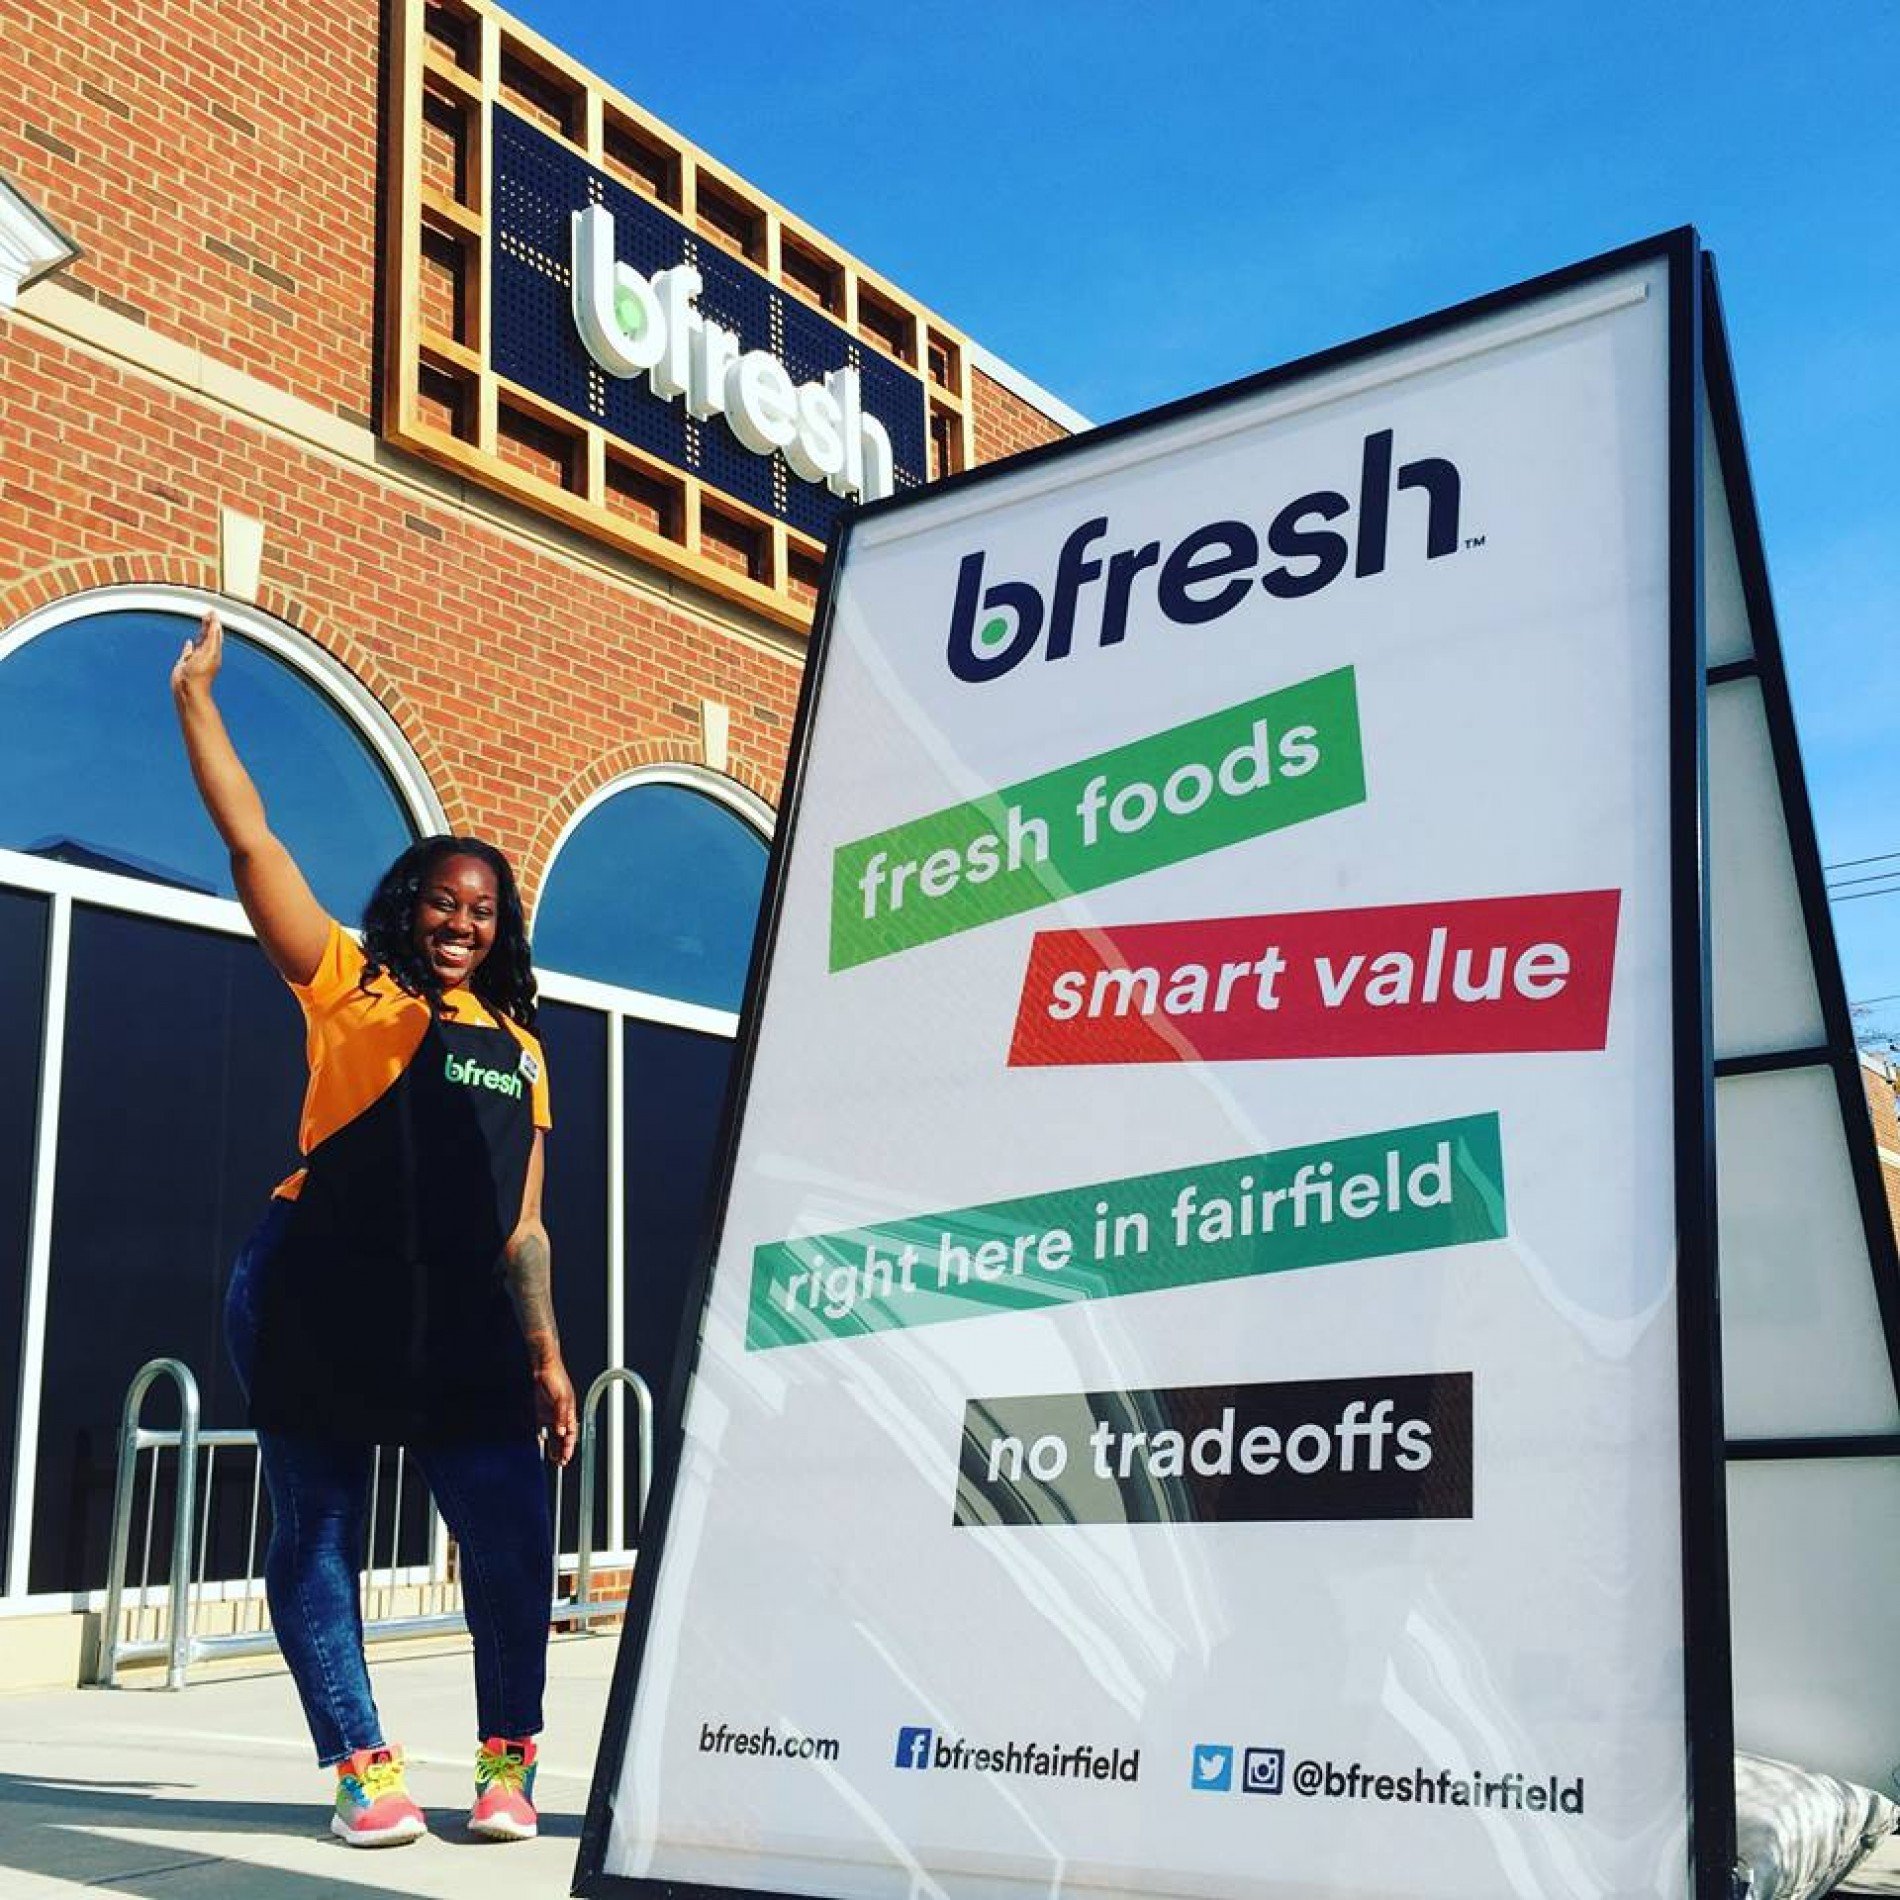 bfresh (Ahold) Concept Store Fairfield, CT USA 20Feb16